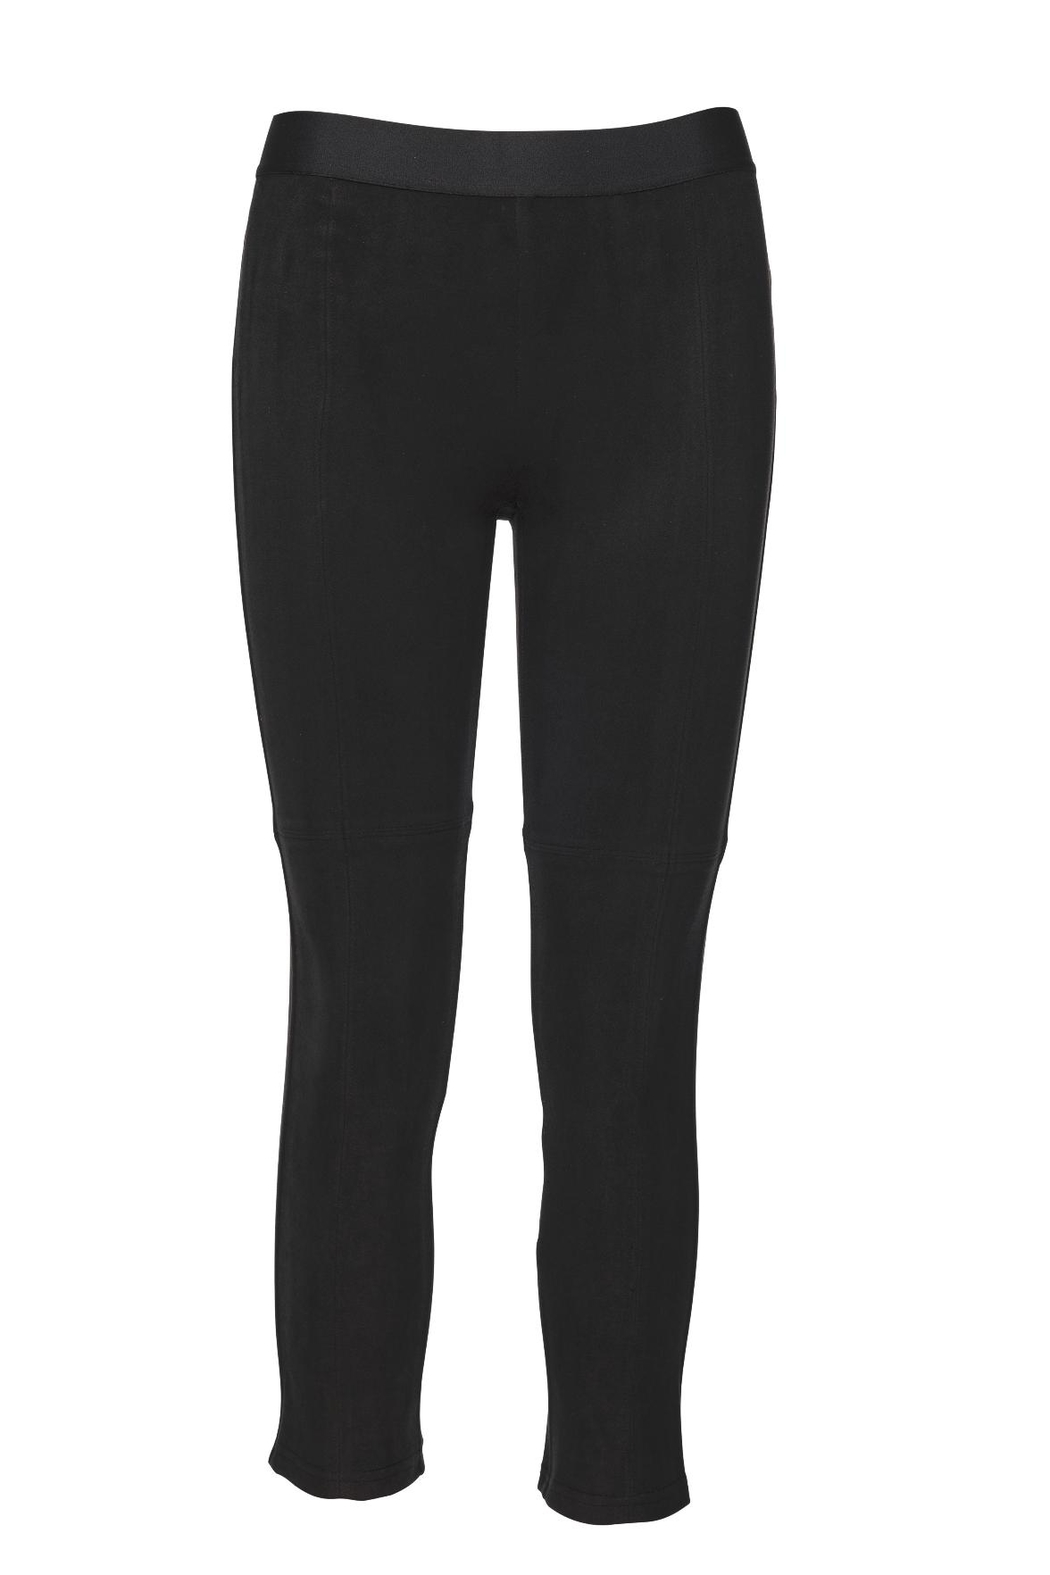 David Lerner New York Microsuede Seamed Legging - Main Image